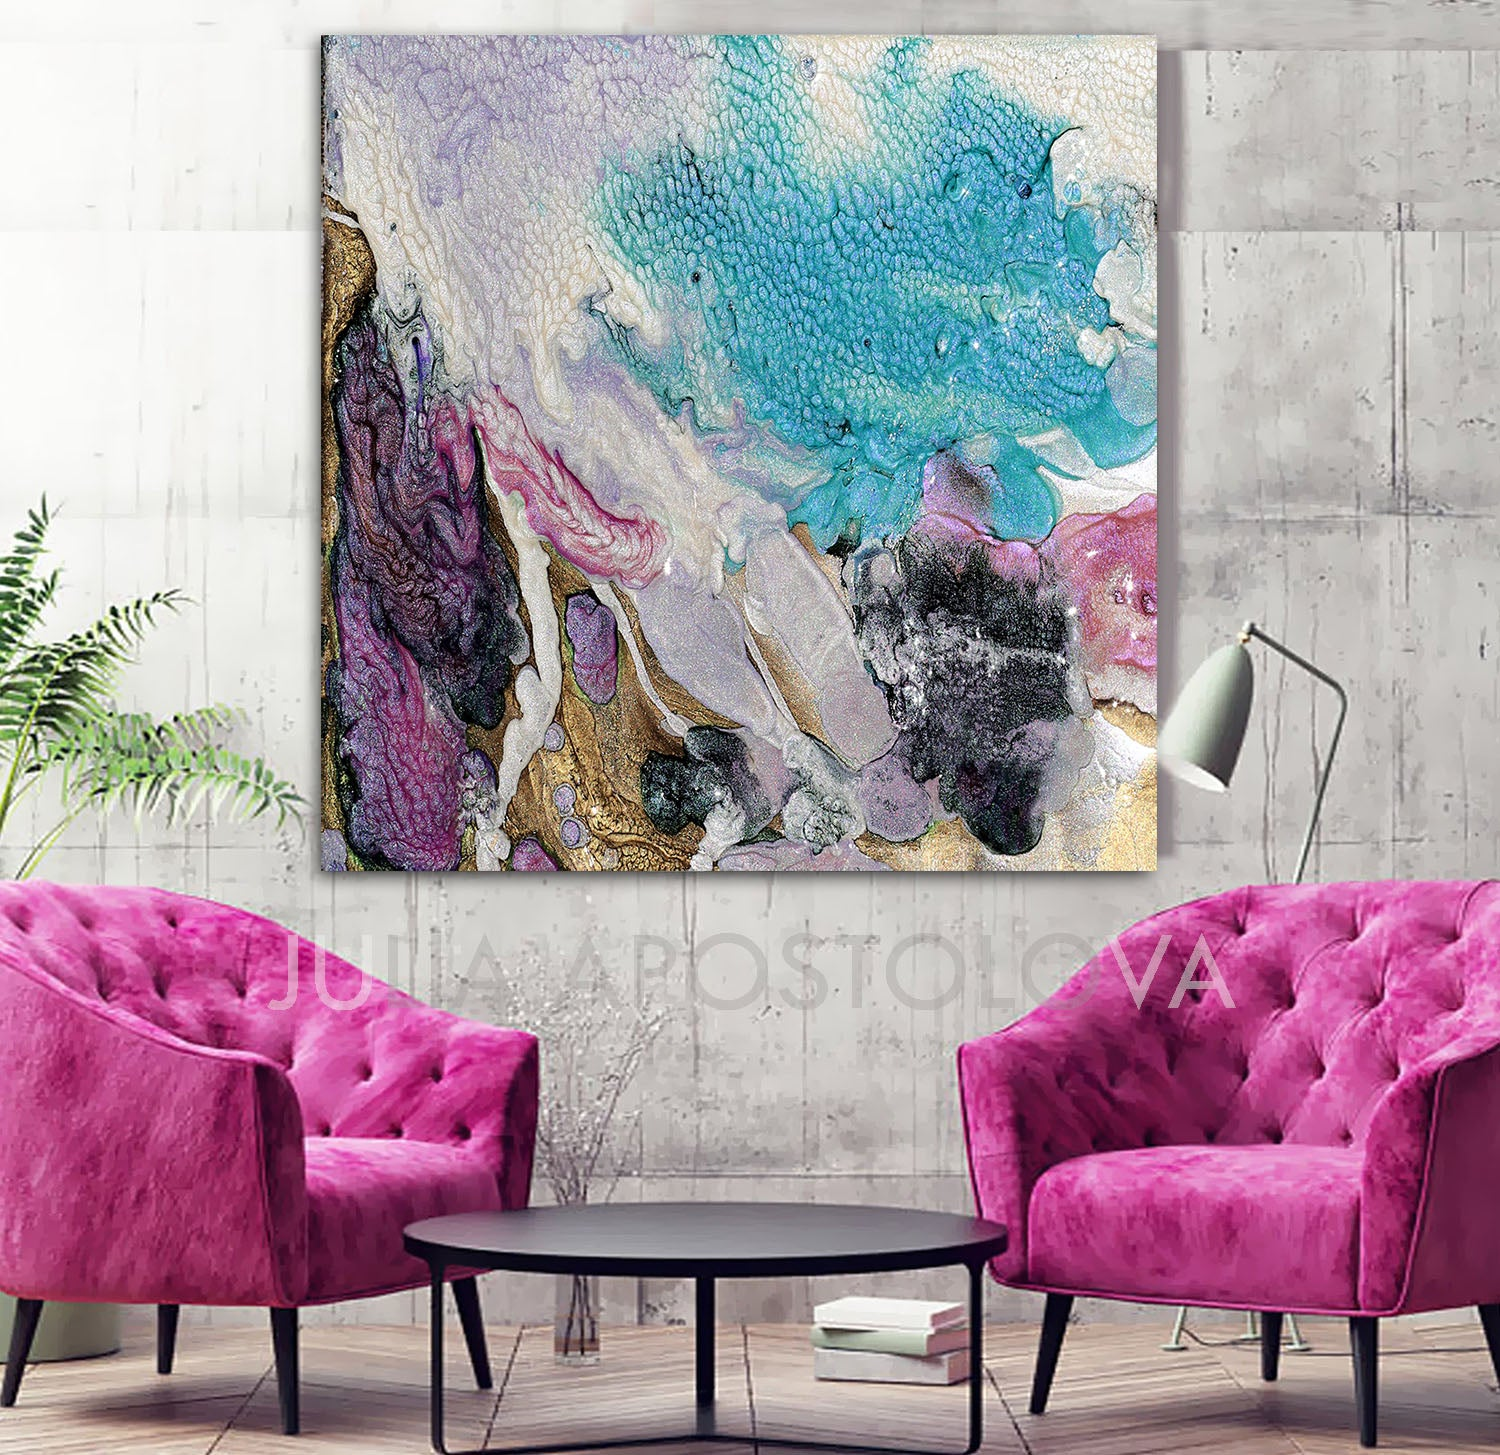 Art Décor: Turquoise Purple Gold, Cell Abstract Art Canvas Print